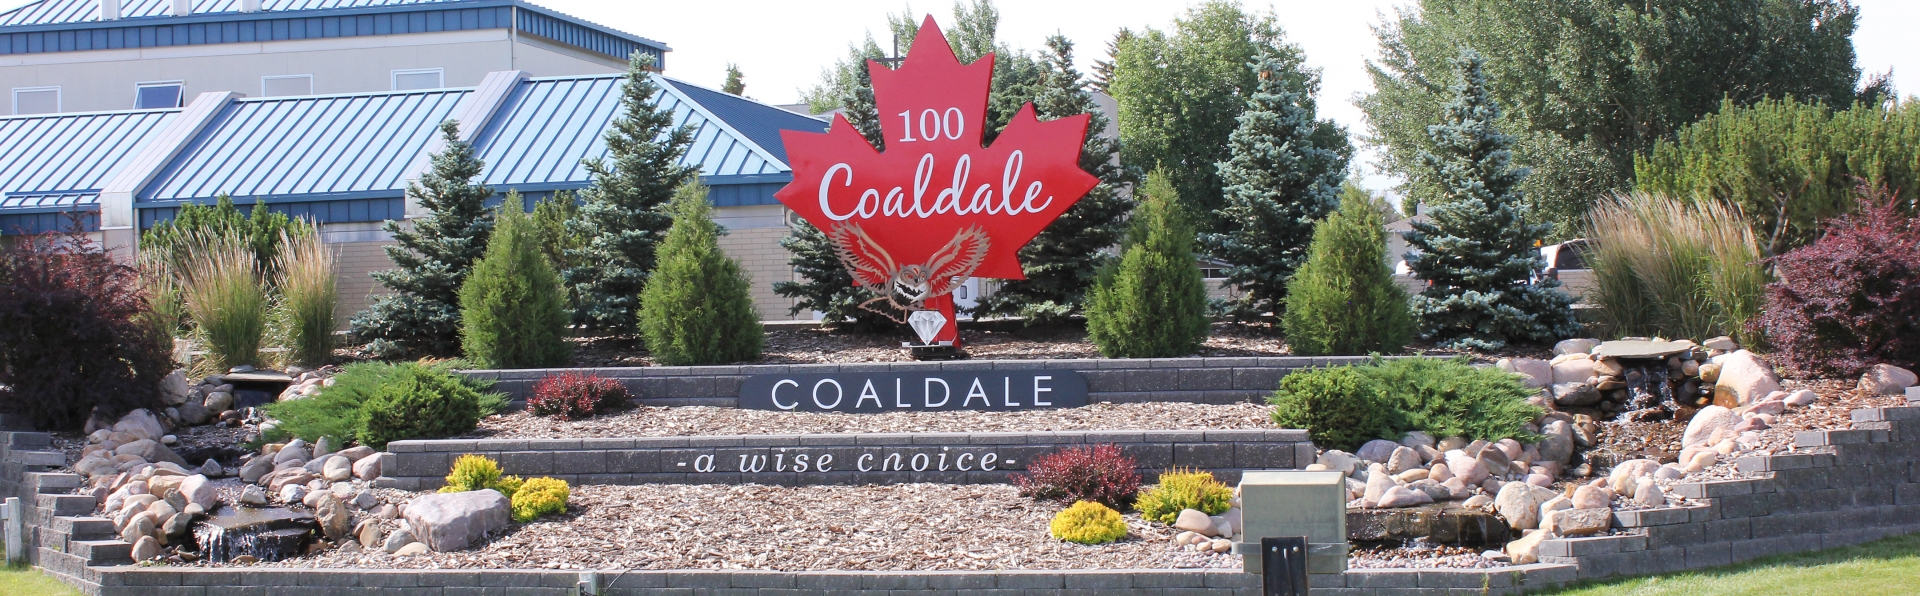 Coaldale Welcomes you sign 100th